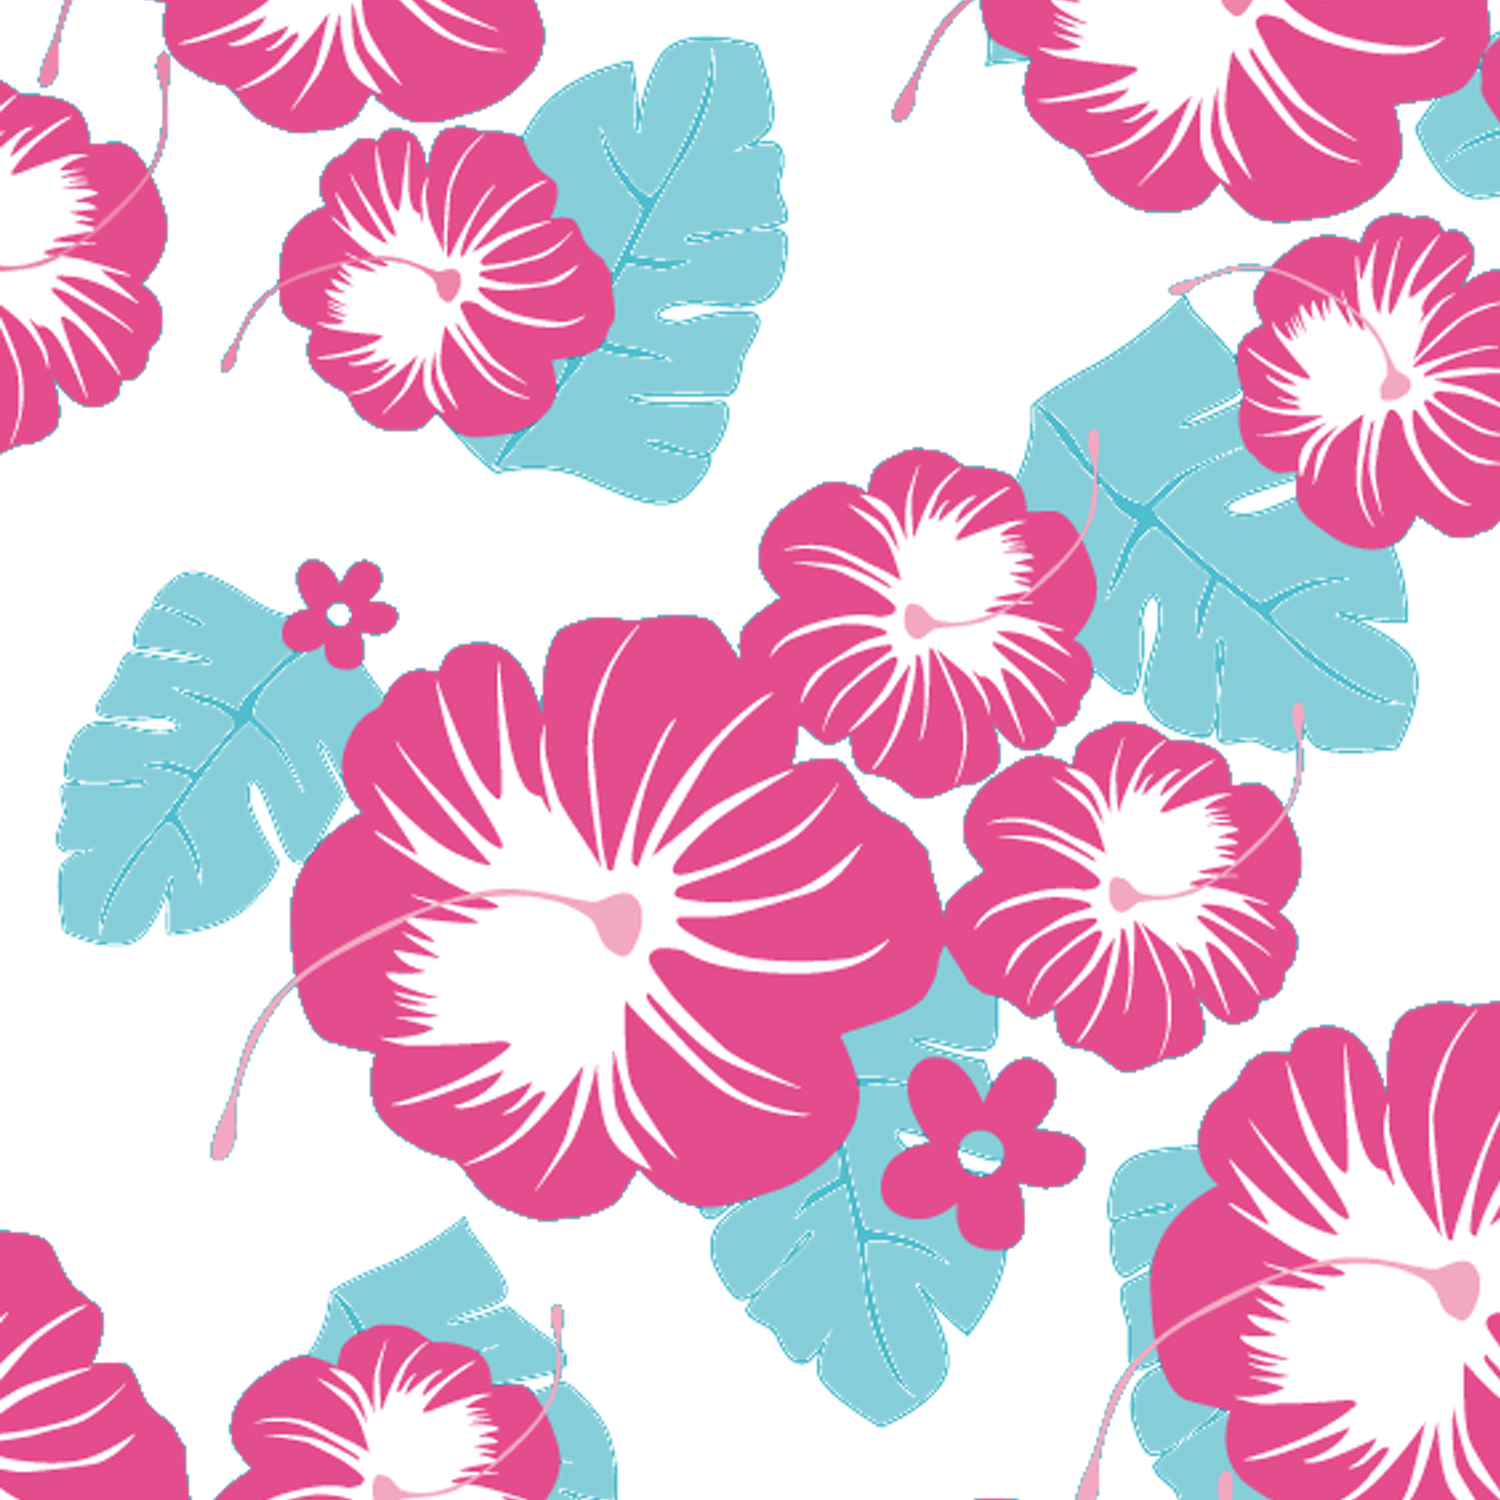 Hawaiian flower clipart png picture free library Hawaii Flower Clip art - Hawaii flower 1500*1500 transprent Png Free ... picture free library